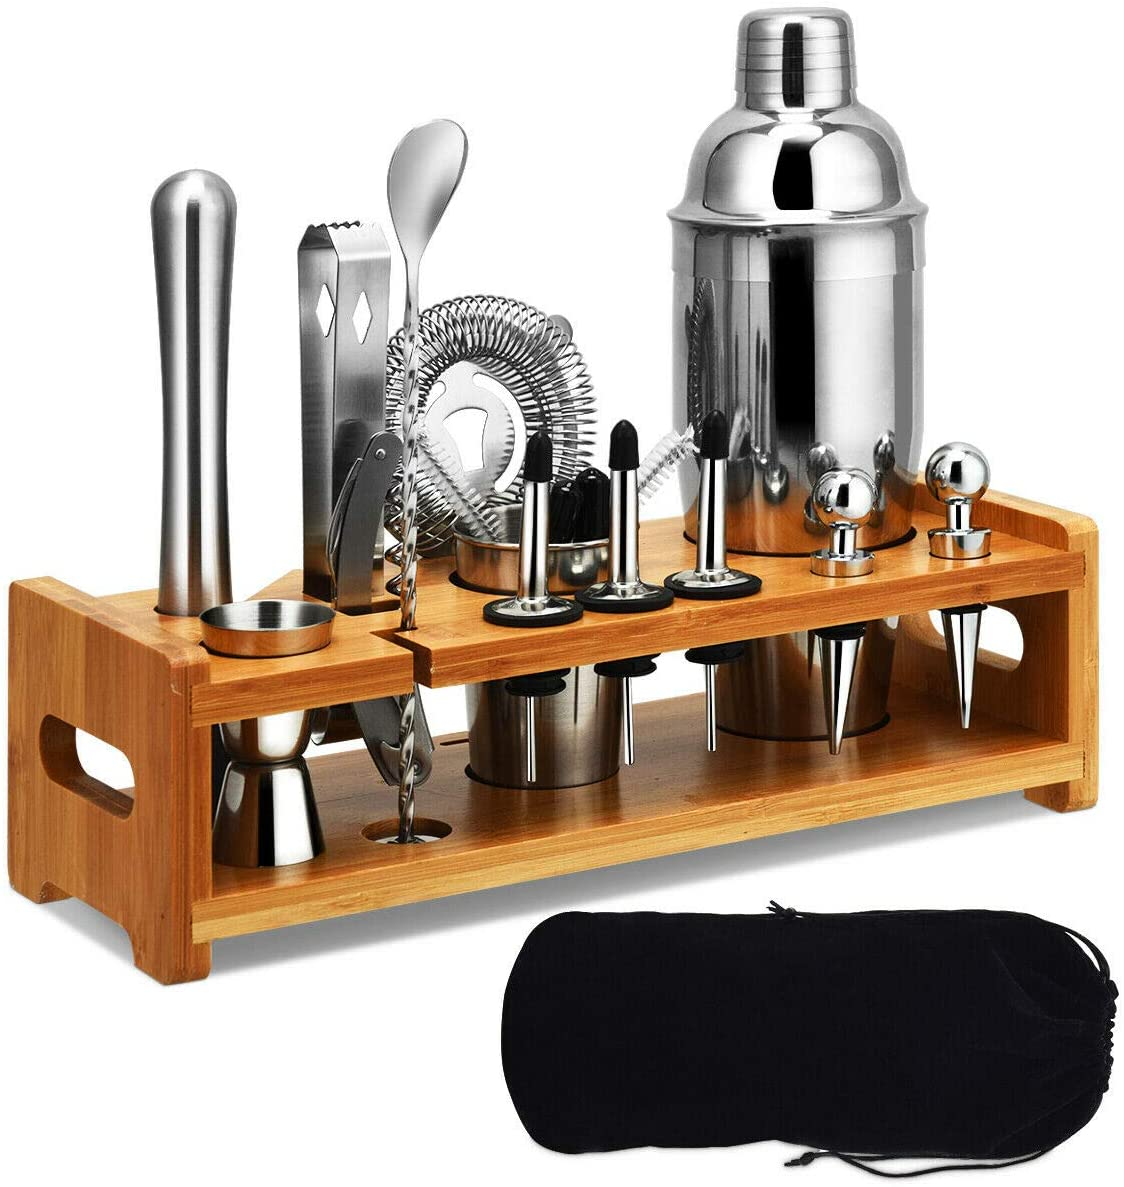 Martini Bartender Kit Copper Coated Rose Gold Stainless Steel Bar Set with Bamboo Stand